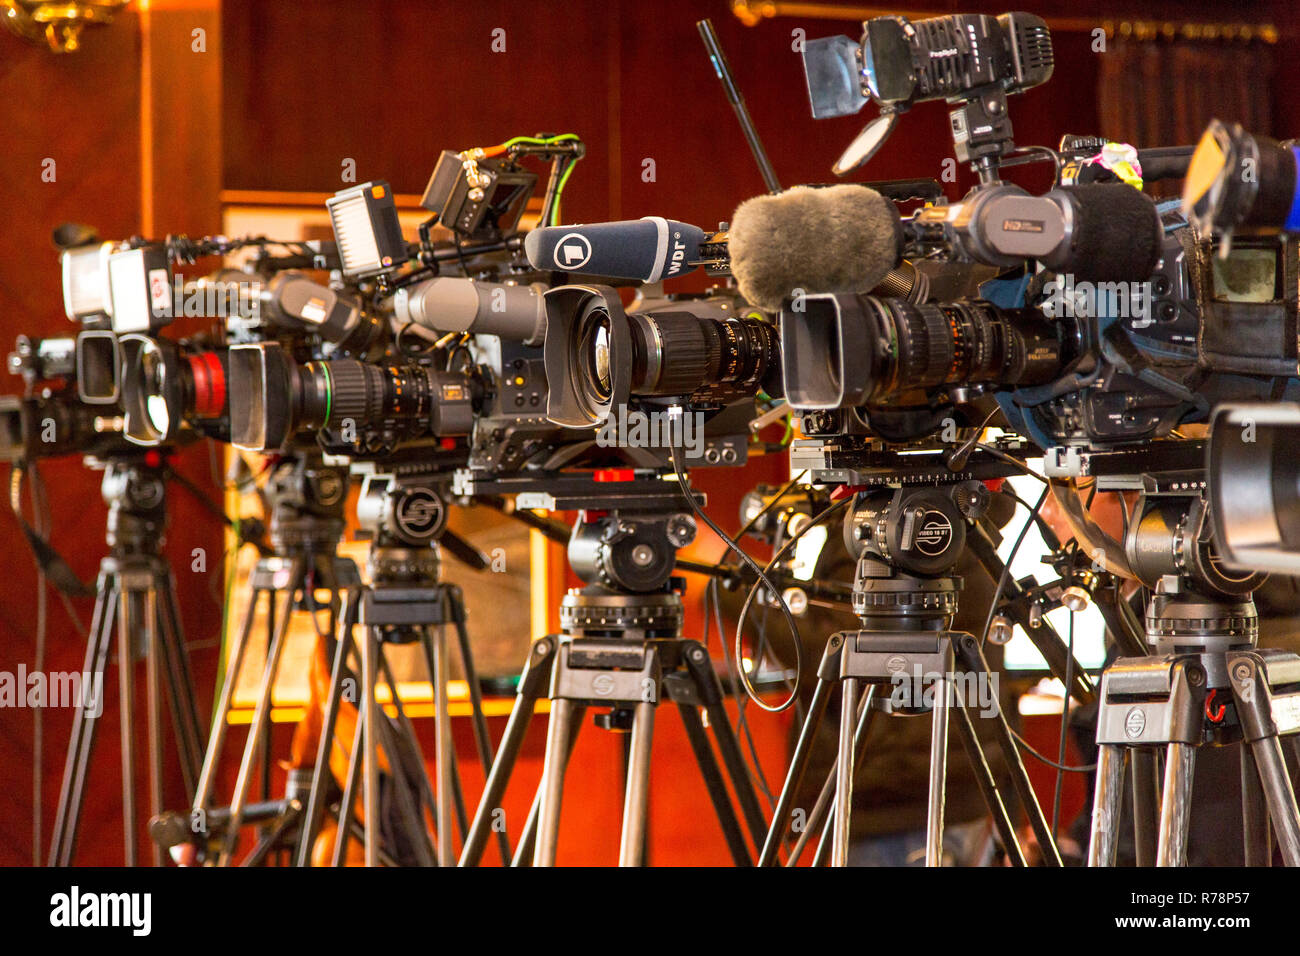 Television cameras on tripods, press conference, Cologne, North Rhine-Westphalia, Germany - Stock Image